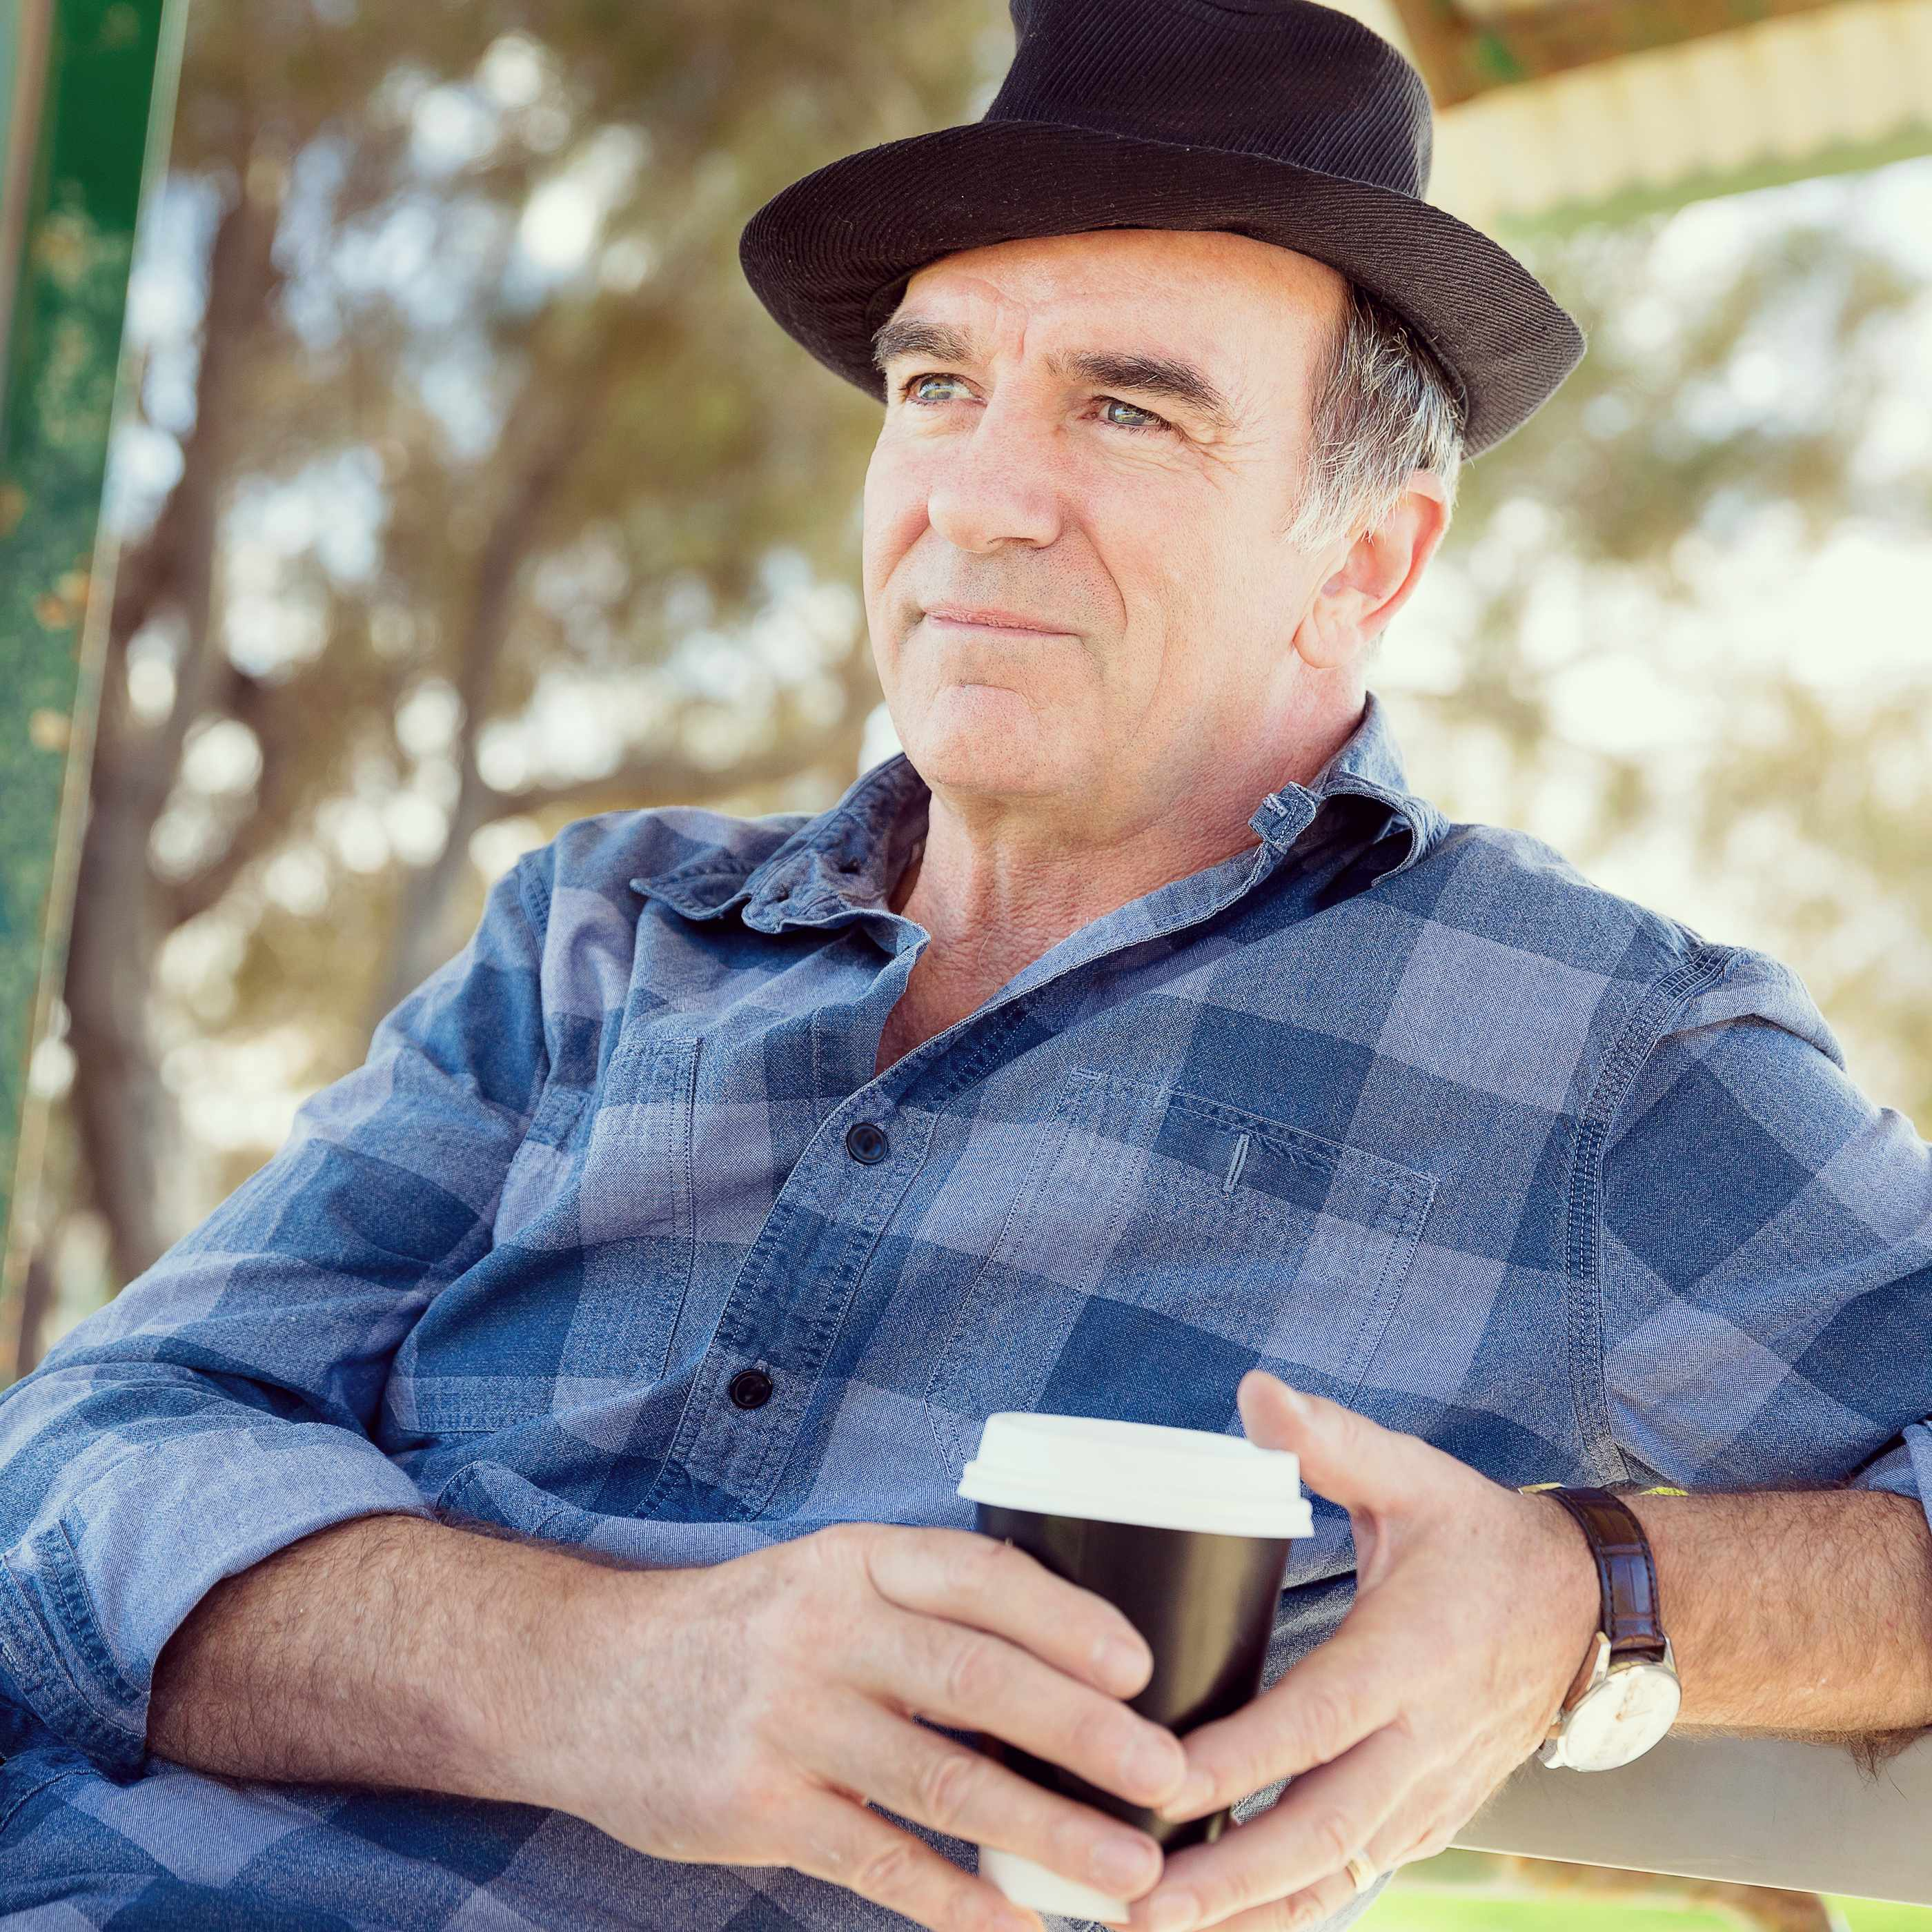 an older man sitting outside with a cup of coffee in his hands and a hat on his head